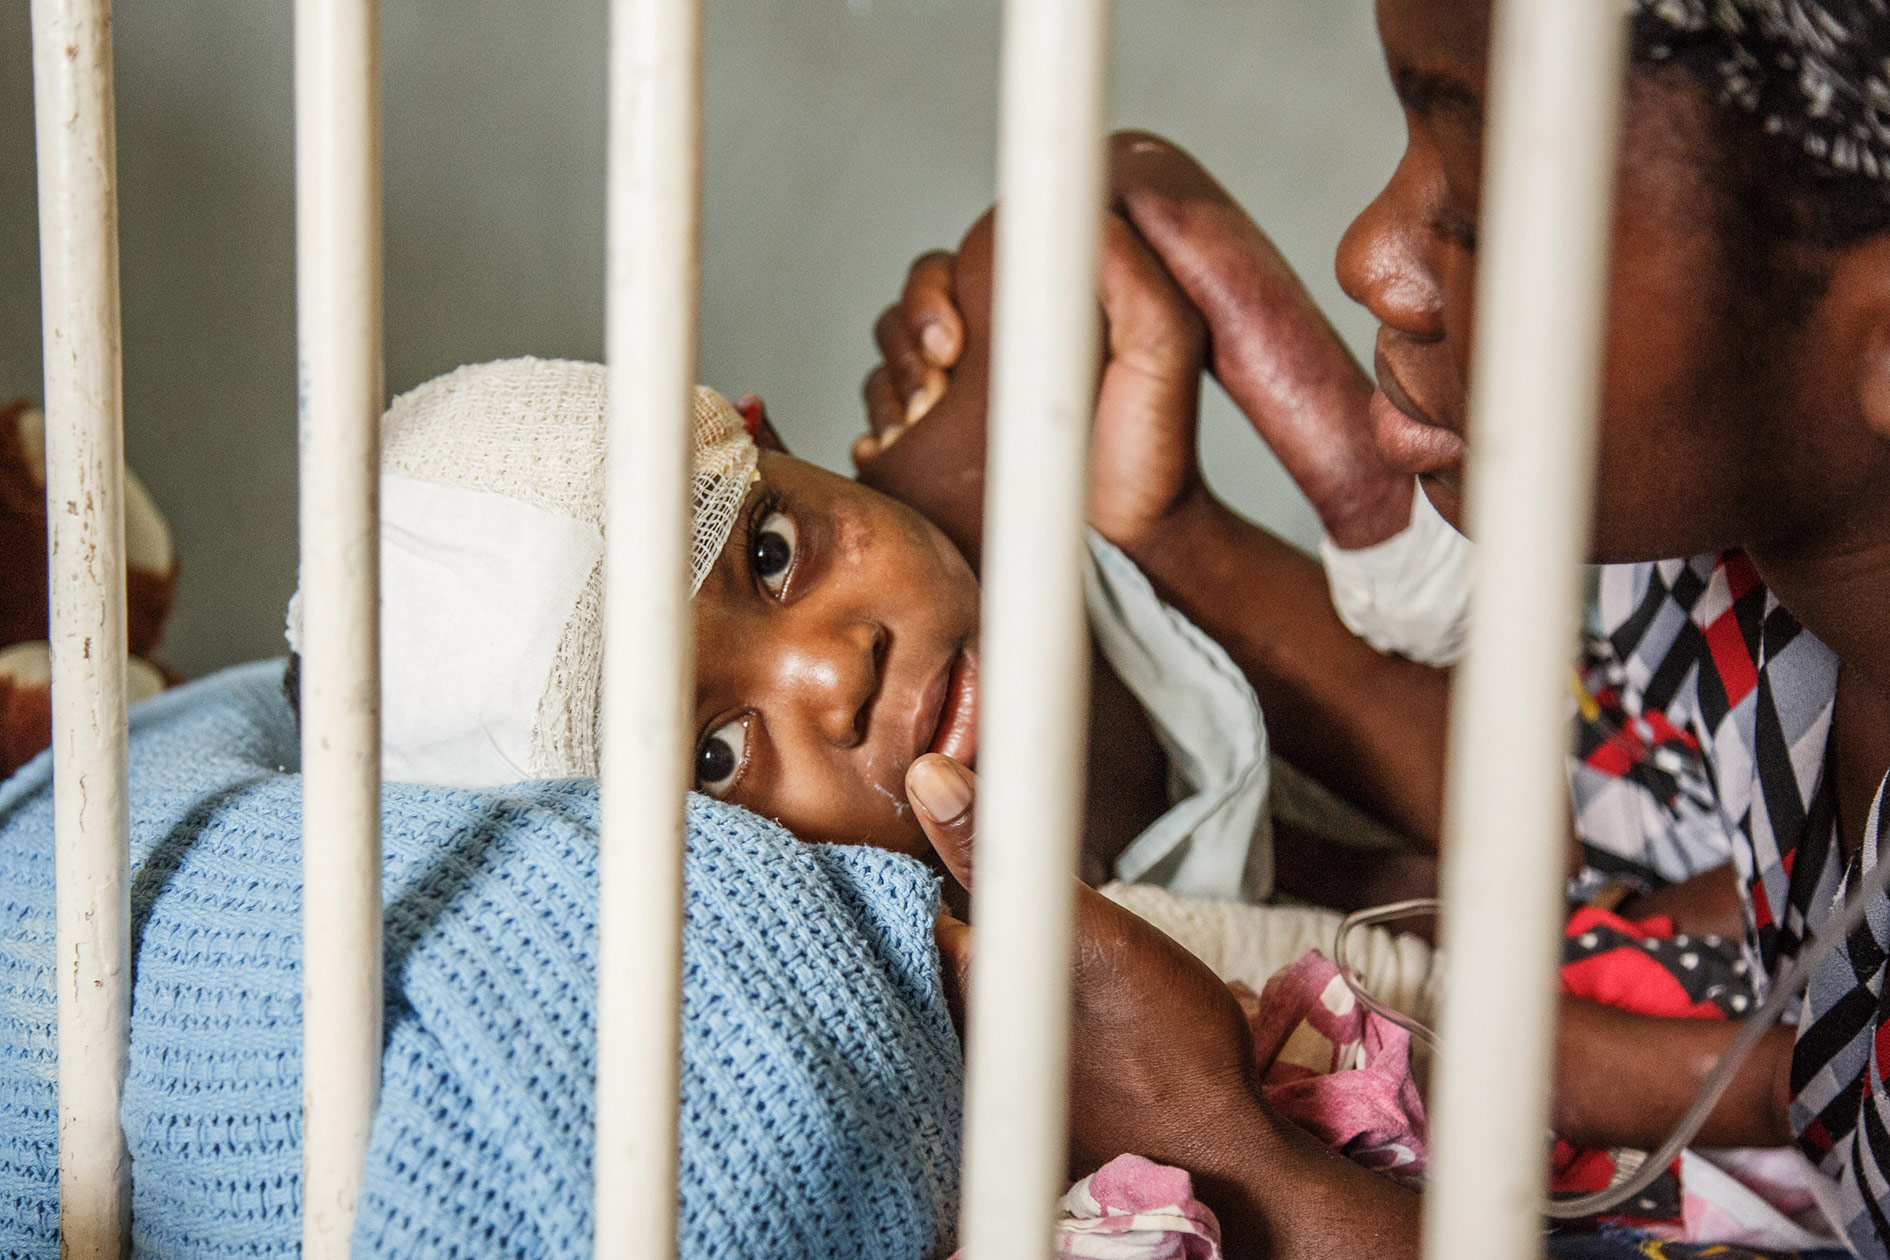 Jacqueline (2-years-old) has just come out of the operating theatre. She suffered severe burns and had to have her second surgery in Kamuru Central Hospital in Malawi's capital Lilongwe.